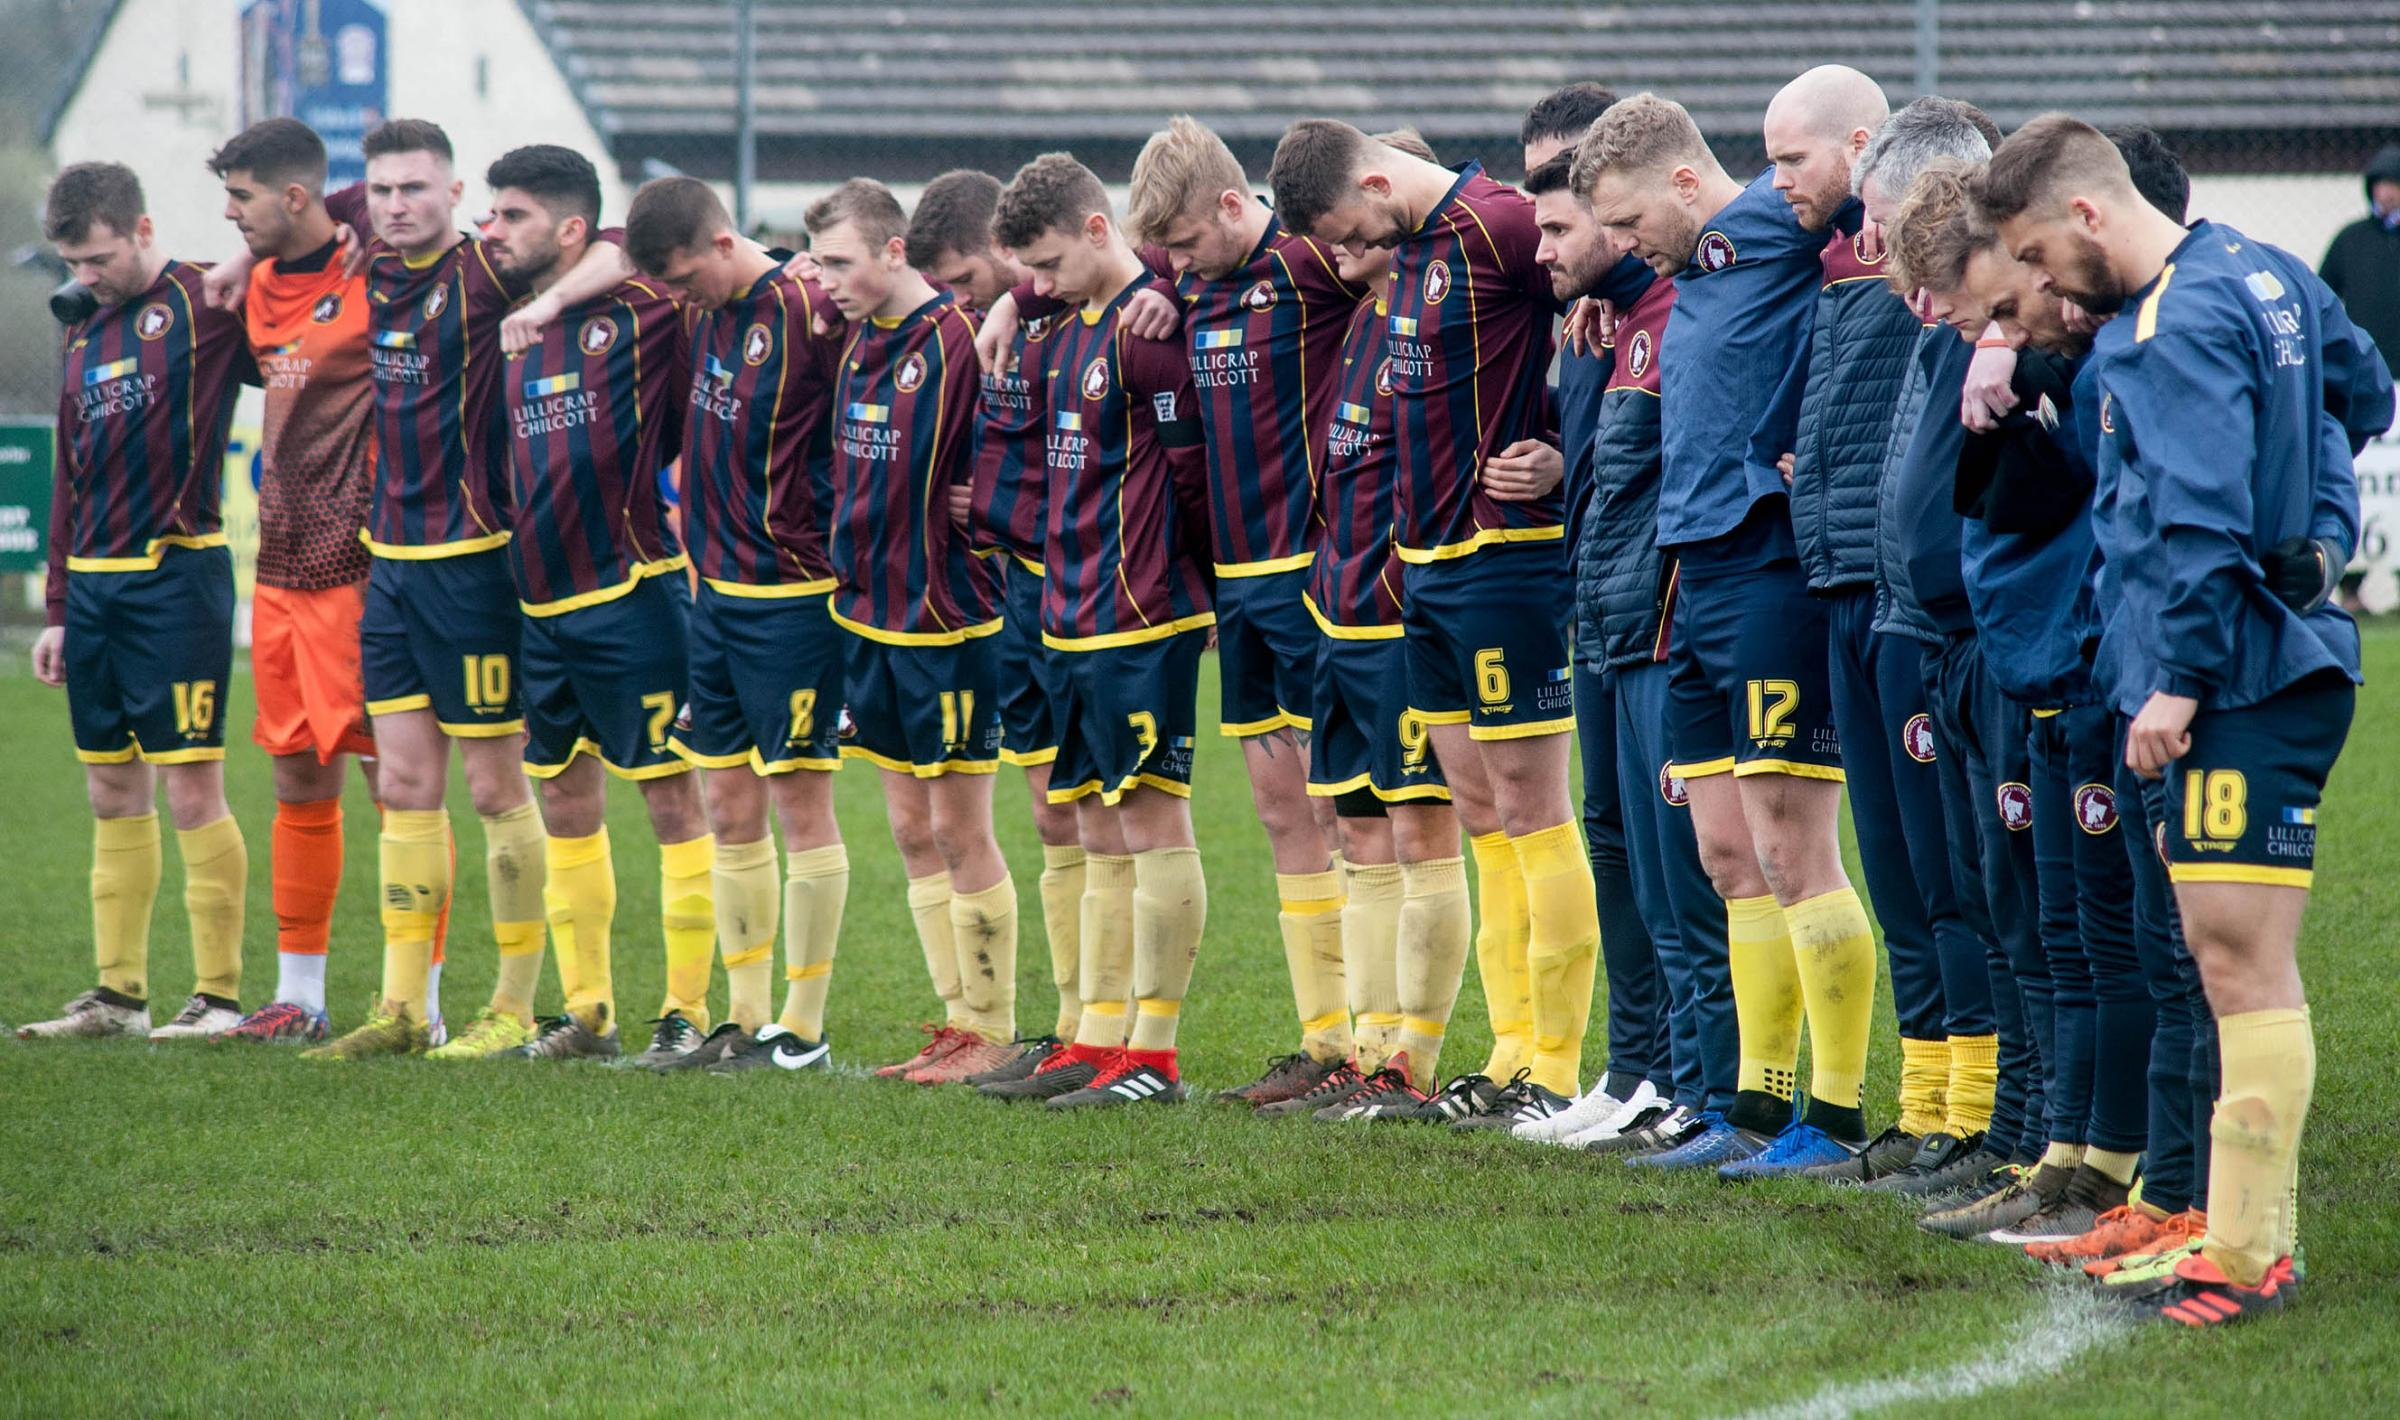 Wendron United players and coaching staff observe the minute's silence before kick-off on Saturday. Picture by Colin Higgs